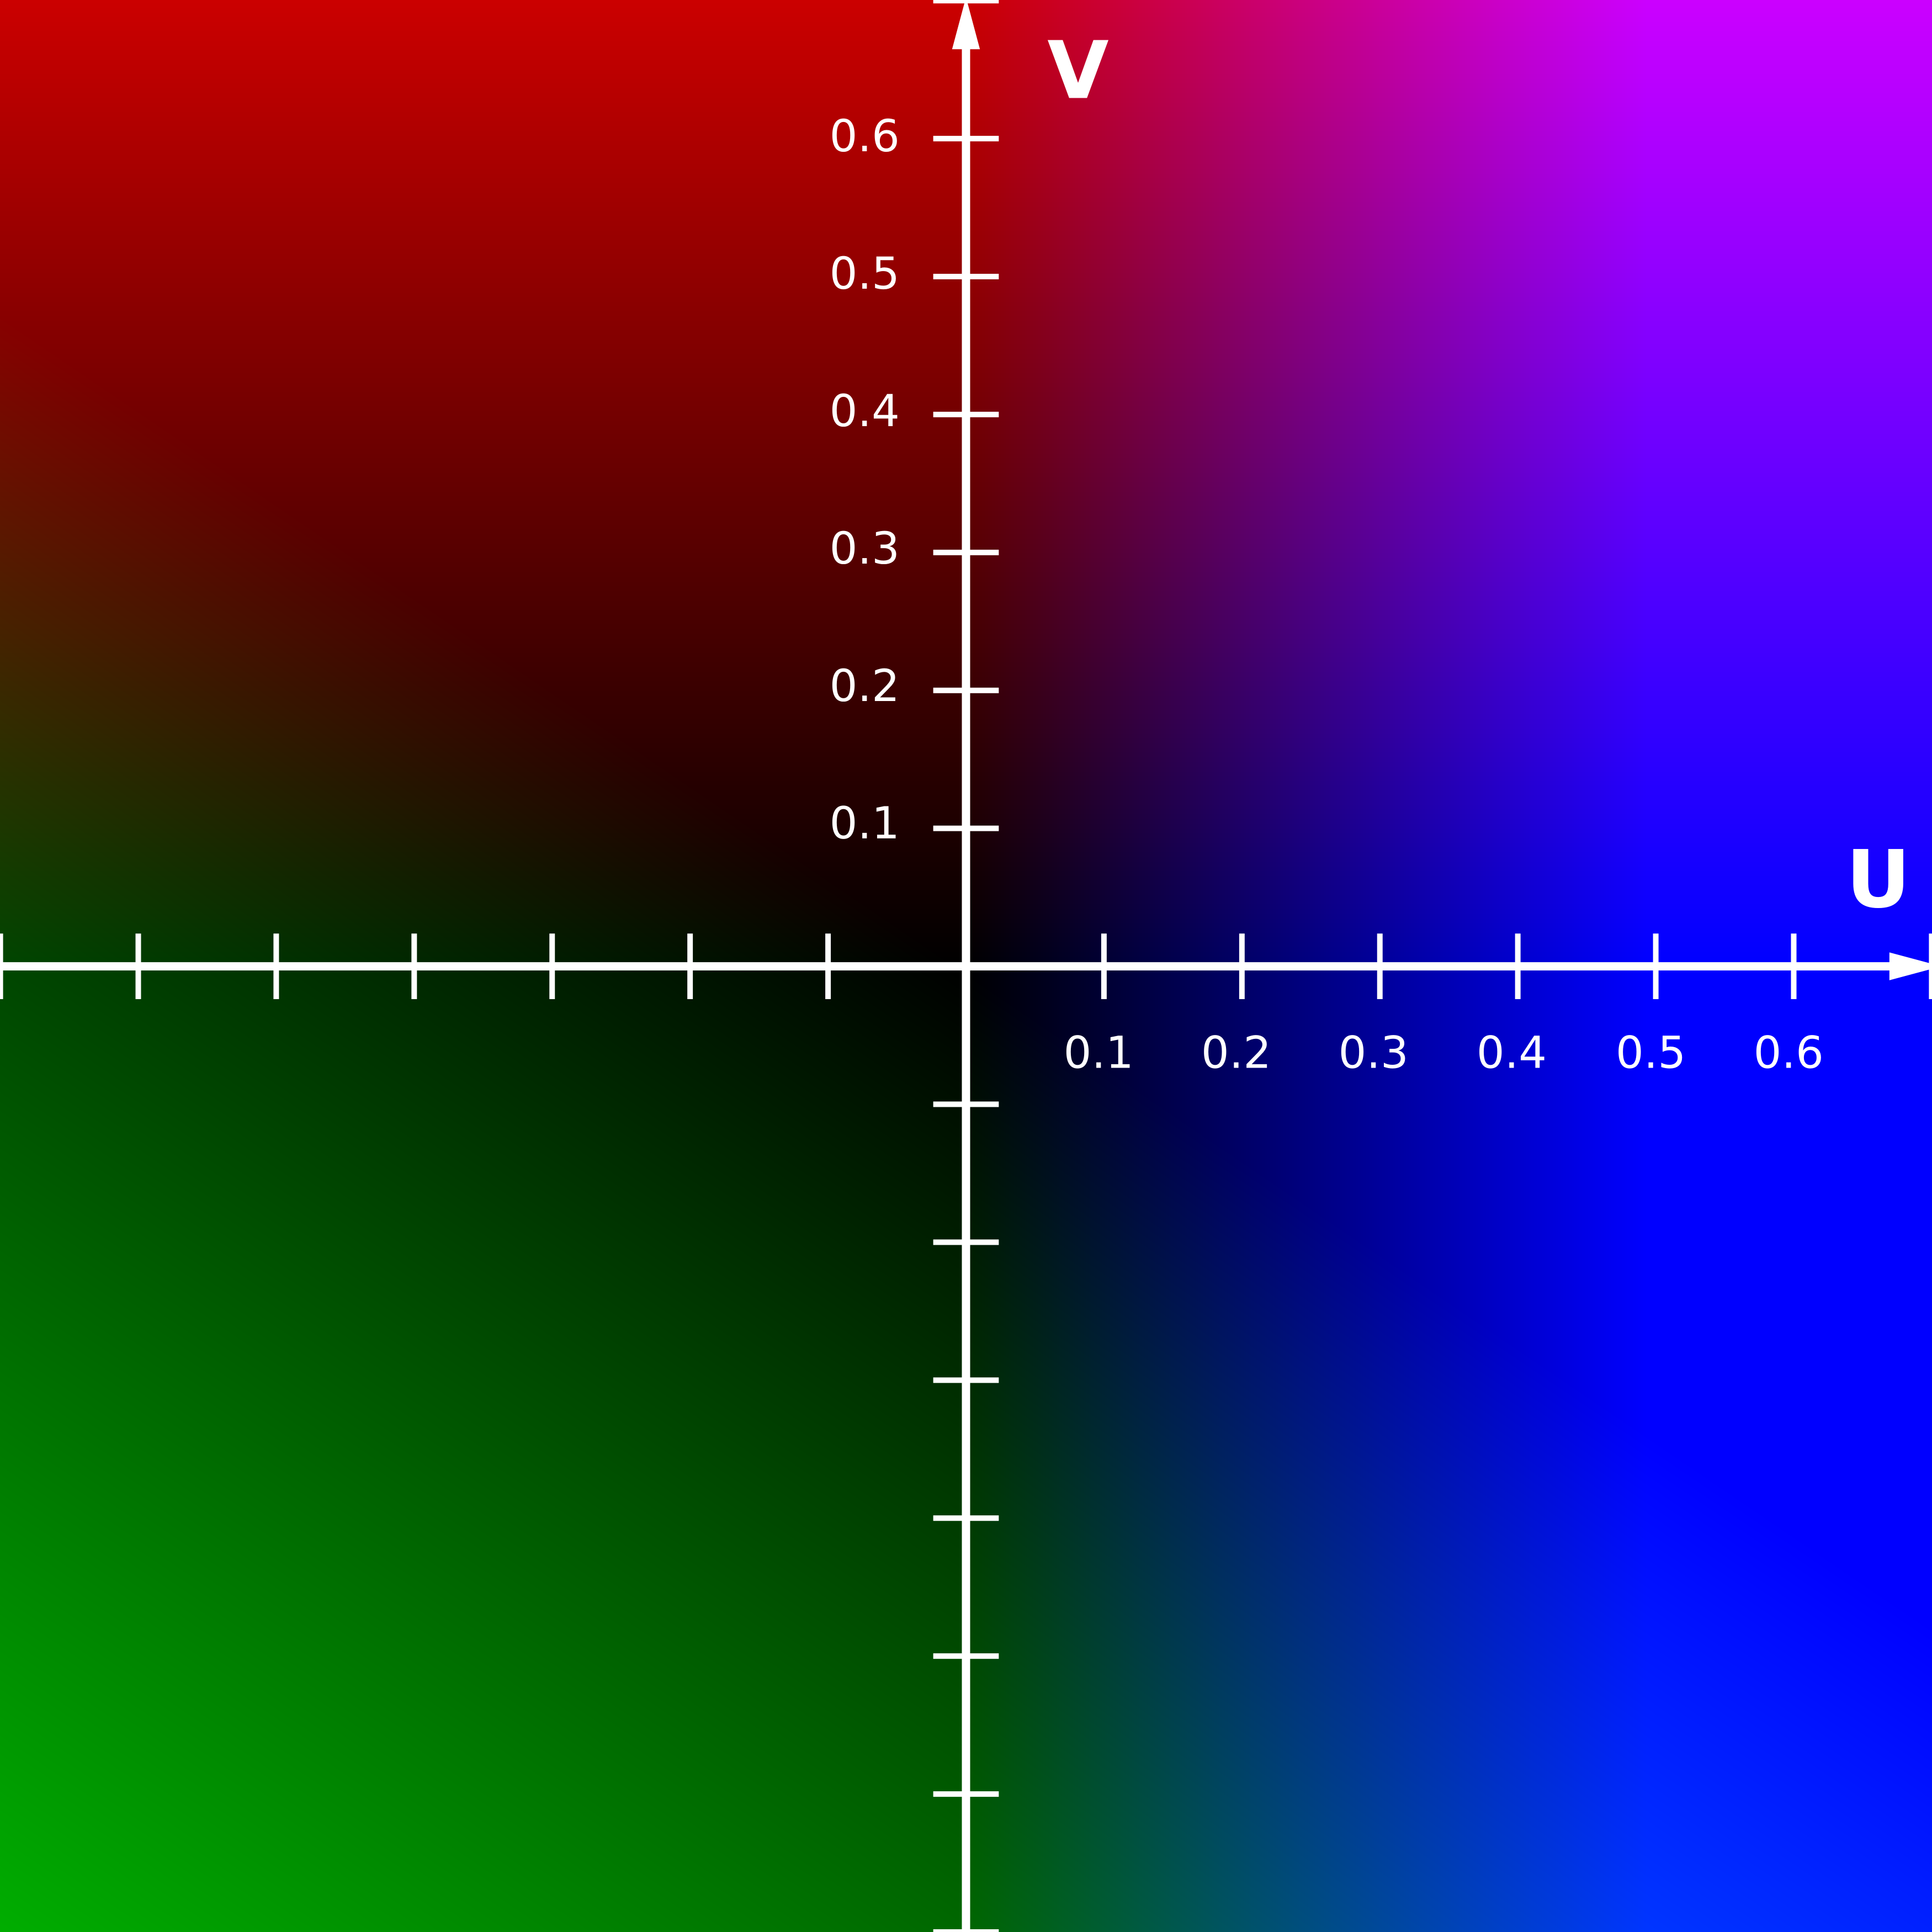 File:YUV-UV Scaled Y0 70 percent png - Wikimedia Commons